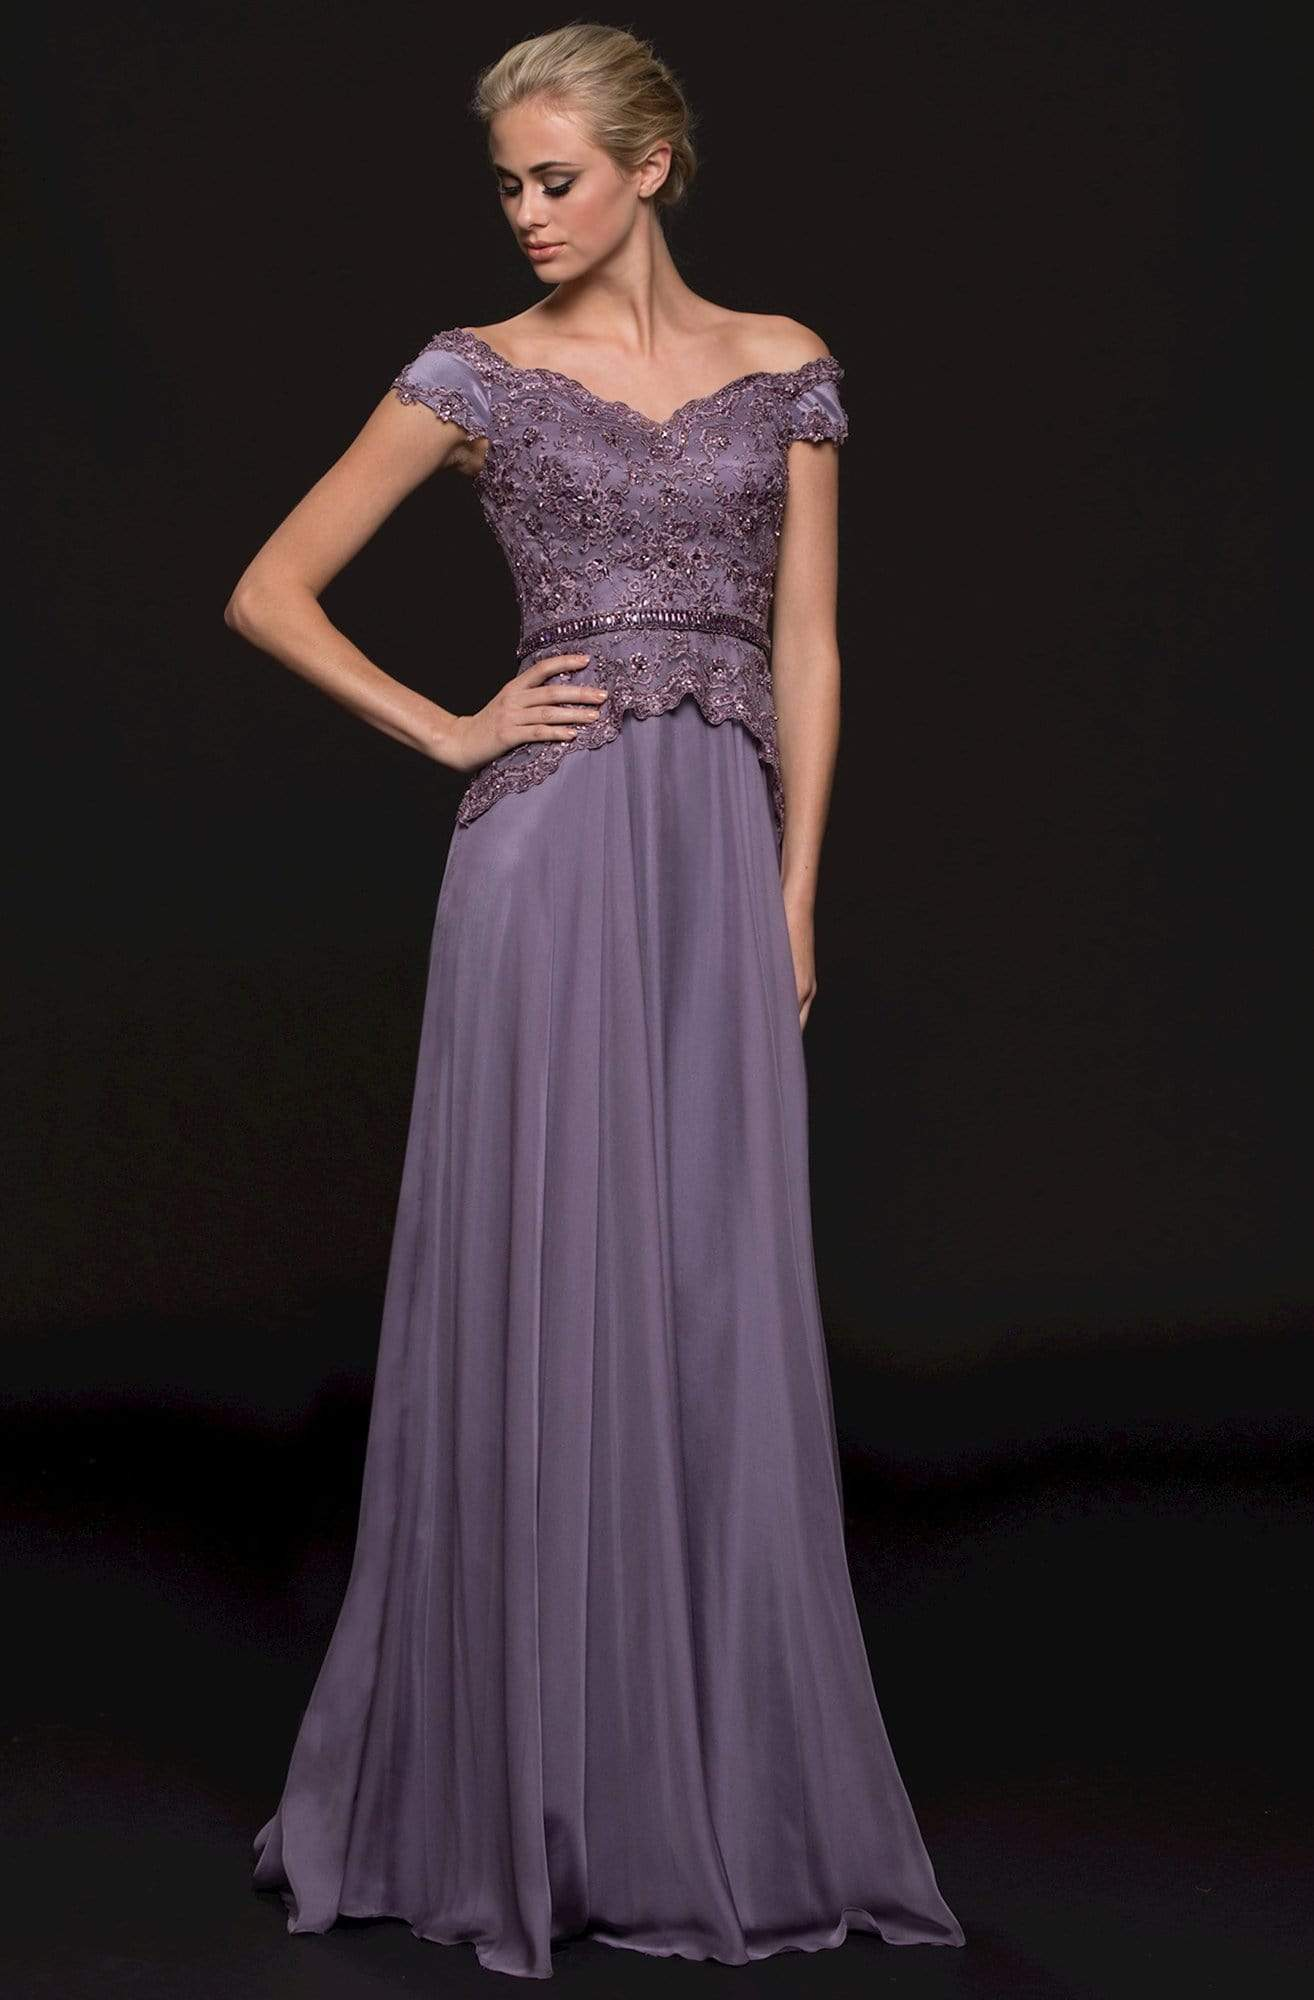 Marsoni by Colors - M213 Embellished Off-Shoulder A-line Dress Mother of the Bride Dresses 6 / Lavender